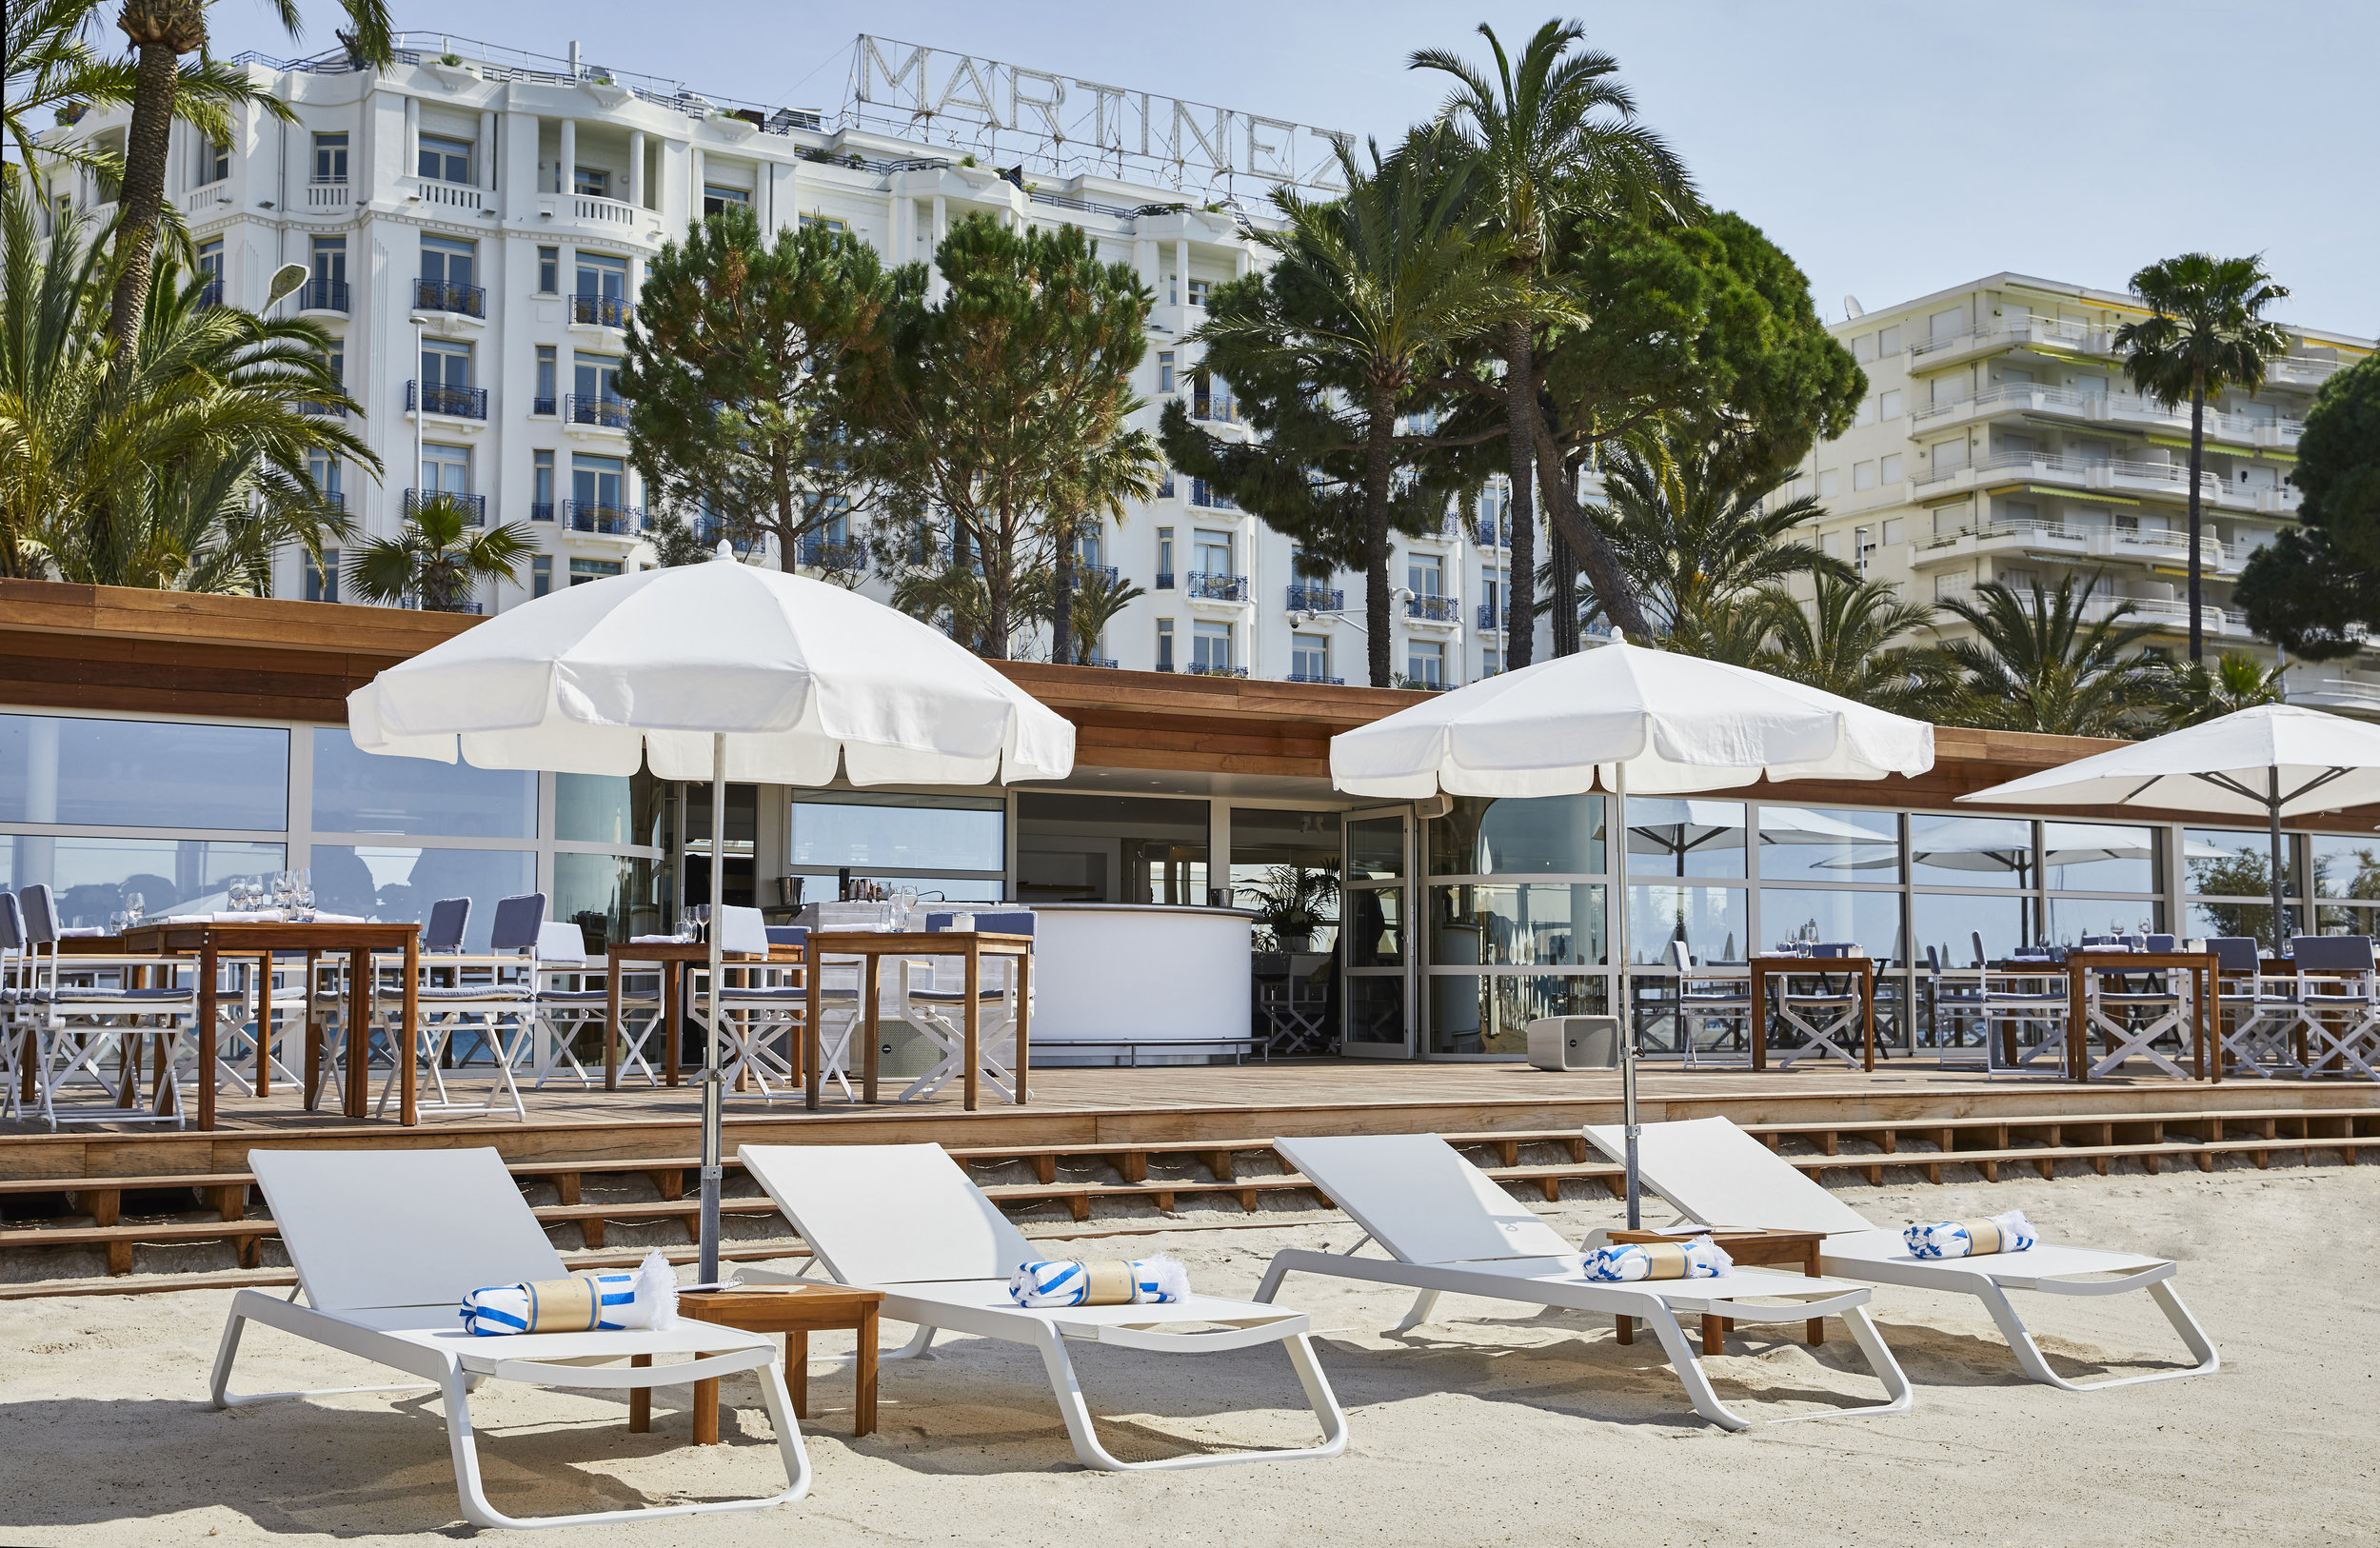 """La Plage du Martinez - Infinite blue waters and white sandy beach set the scene of your lunch with a view. """"La Plage du Martinez"""" private beach is the """"rendez-vous"""" spot for sunny days on the Croisette."""